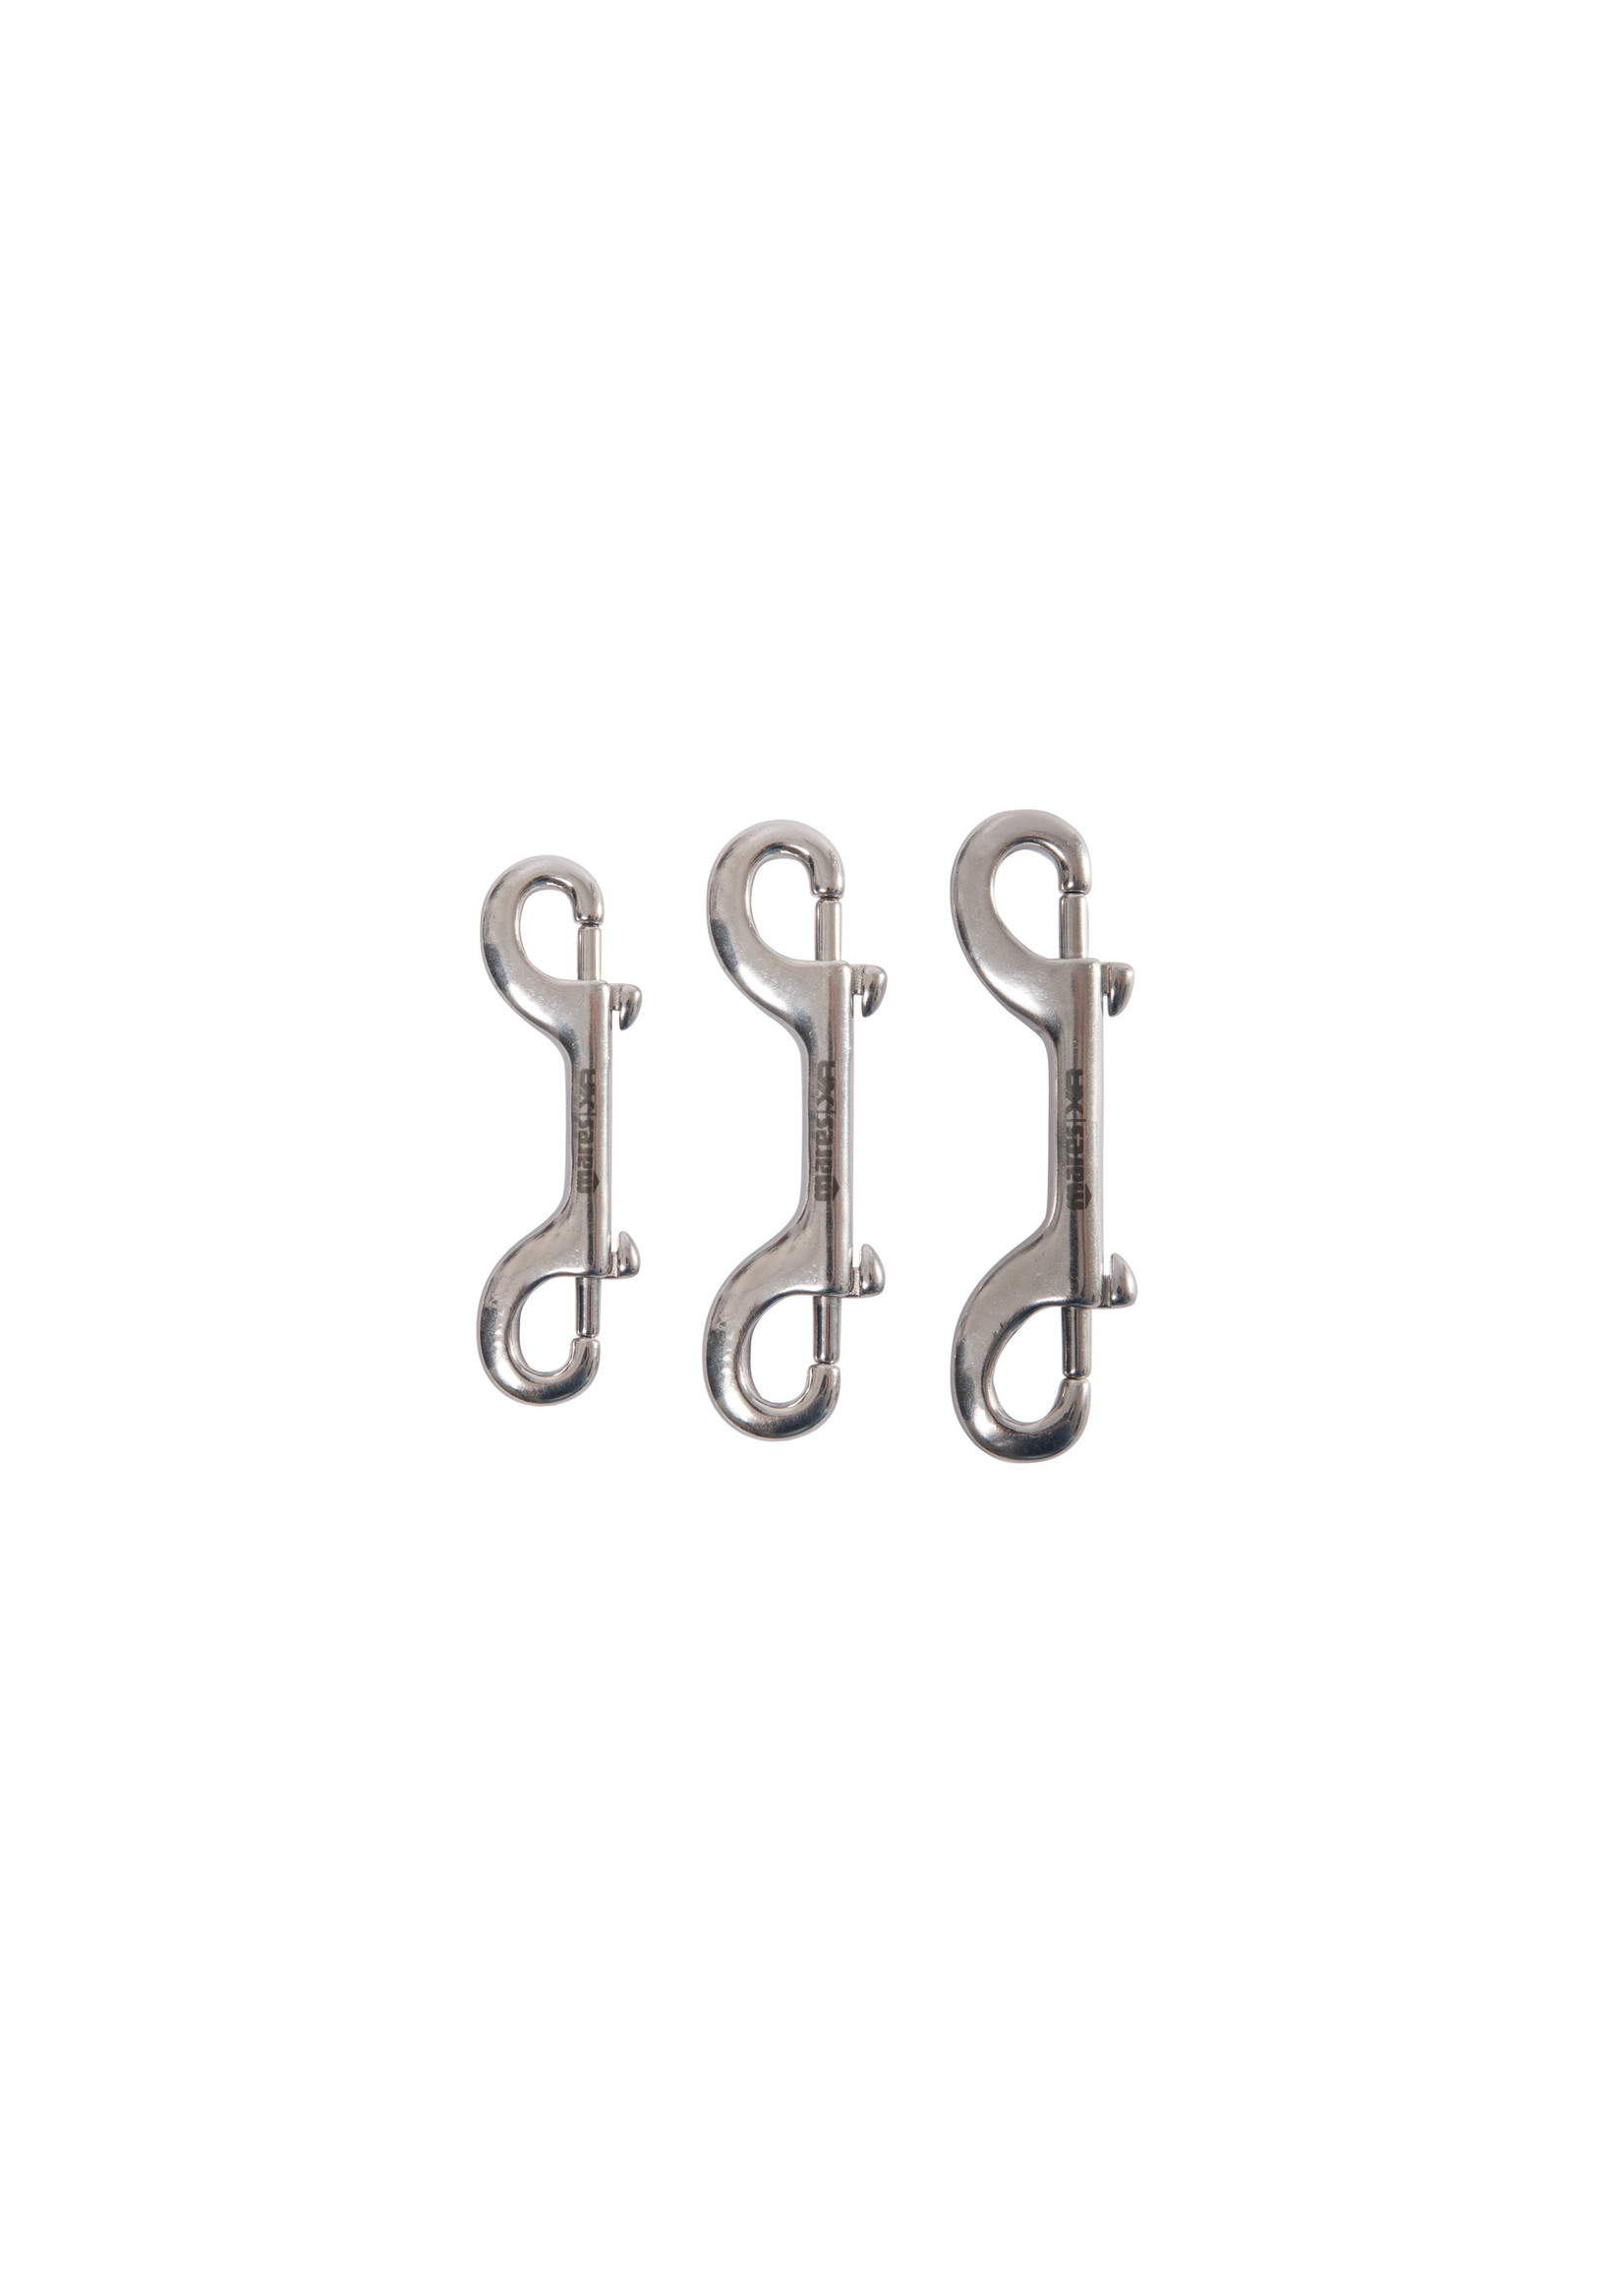 Mares Mares Double Ender Stainless Steel - diverse varianten